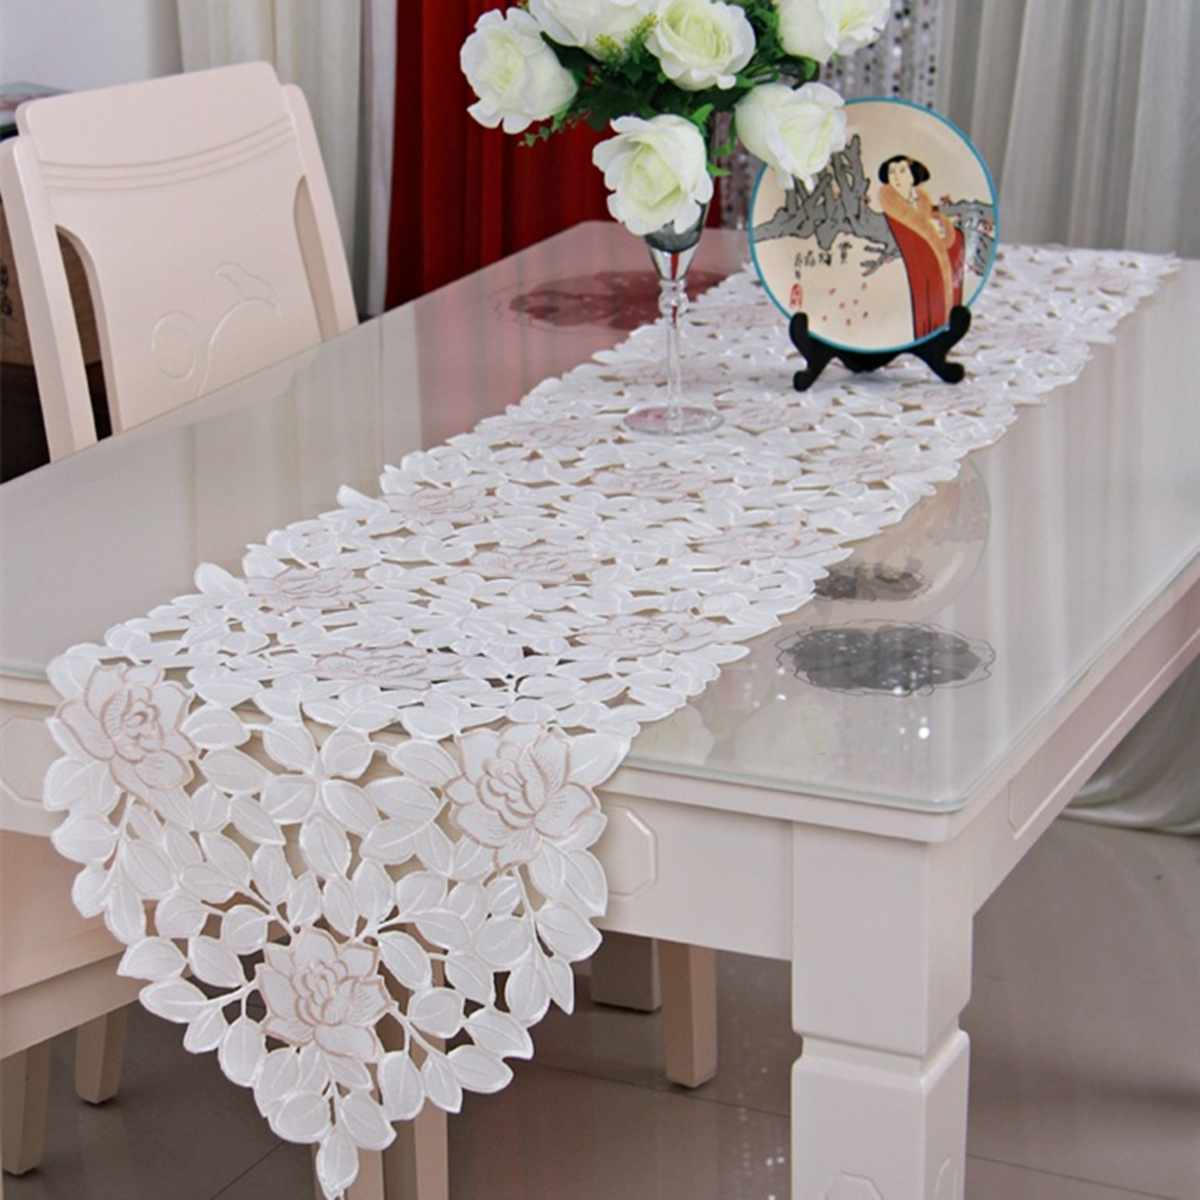 40*150/40*176 Cm Lace Flowers Table Runner Embroidered Dining Room Tablecloth Cover Party Banquet Wedding Decoration White